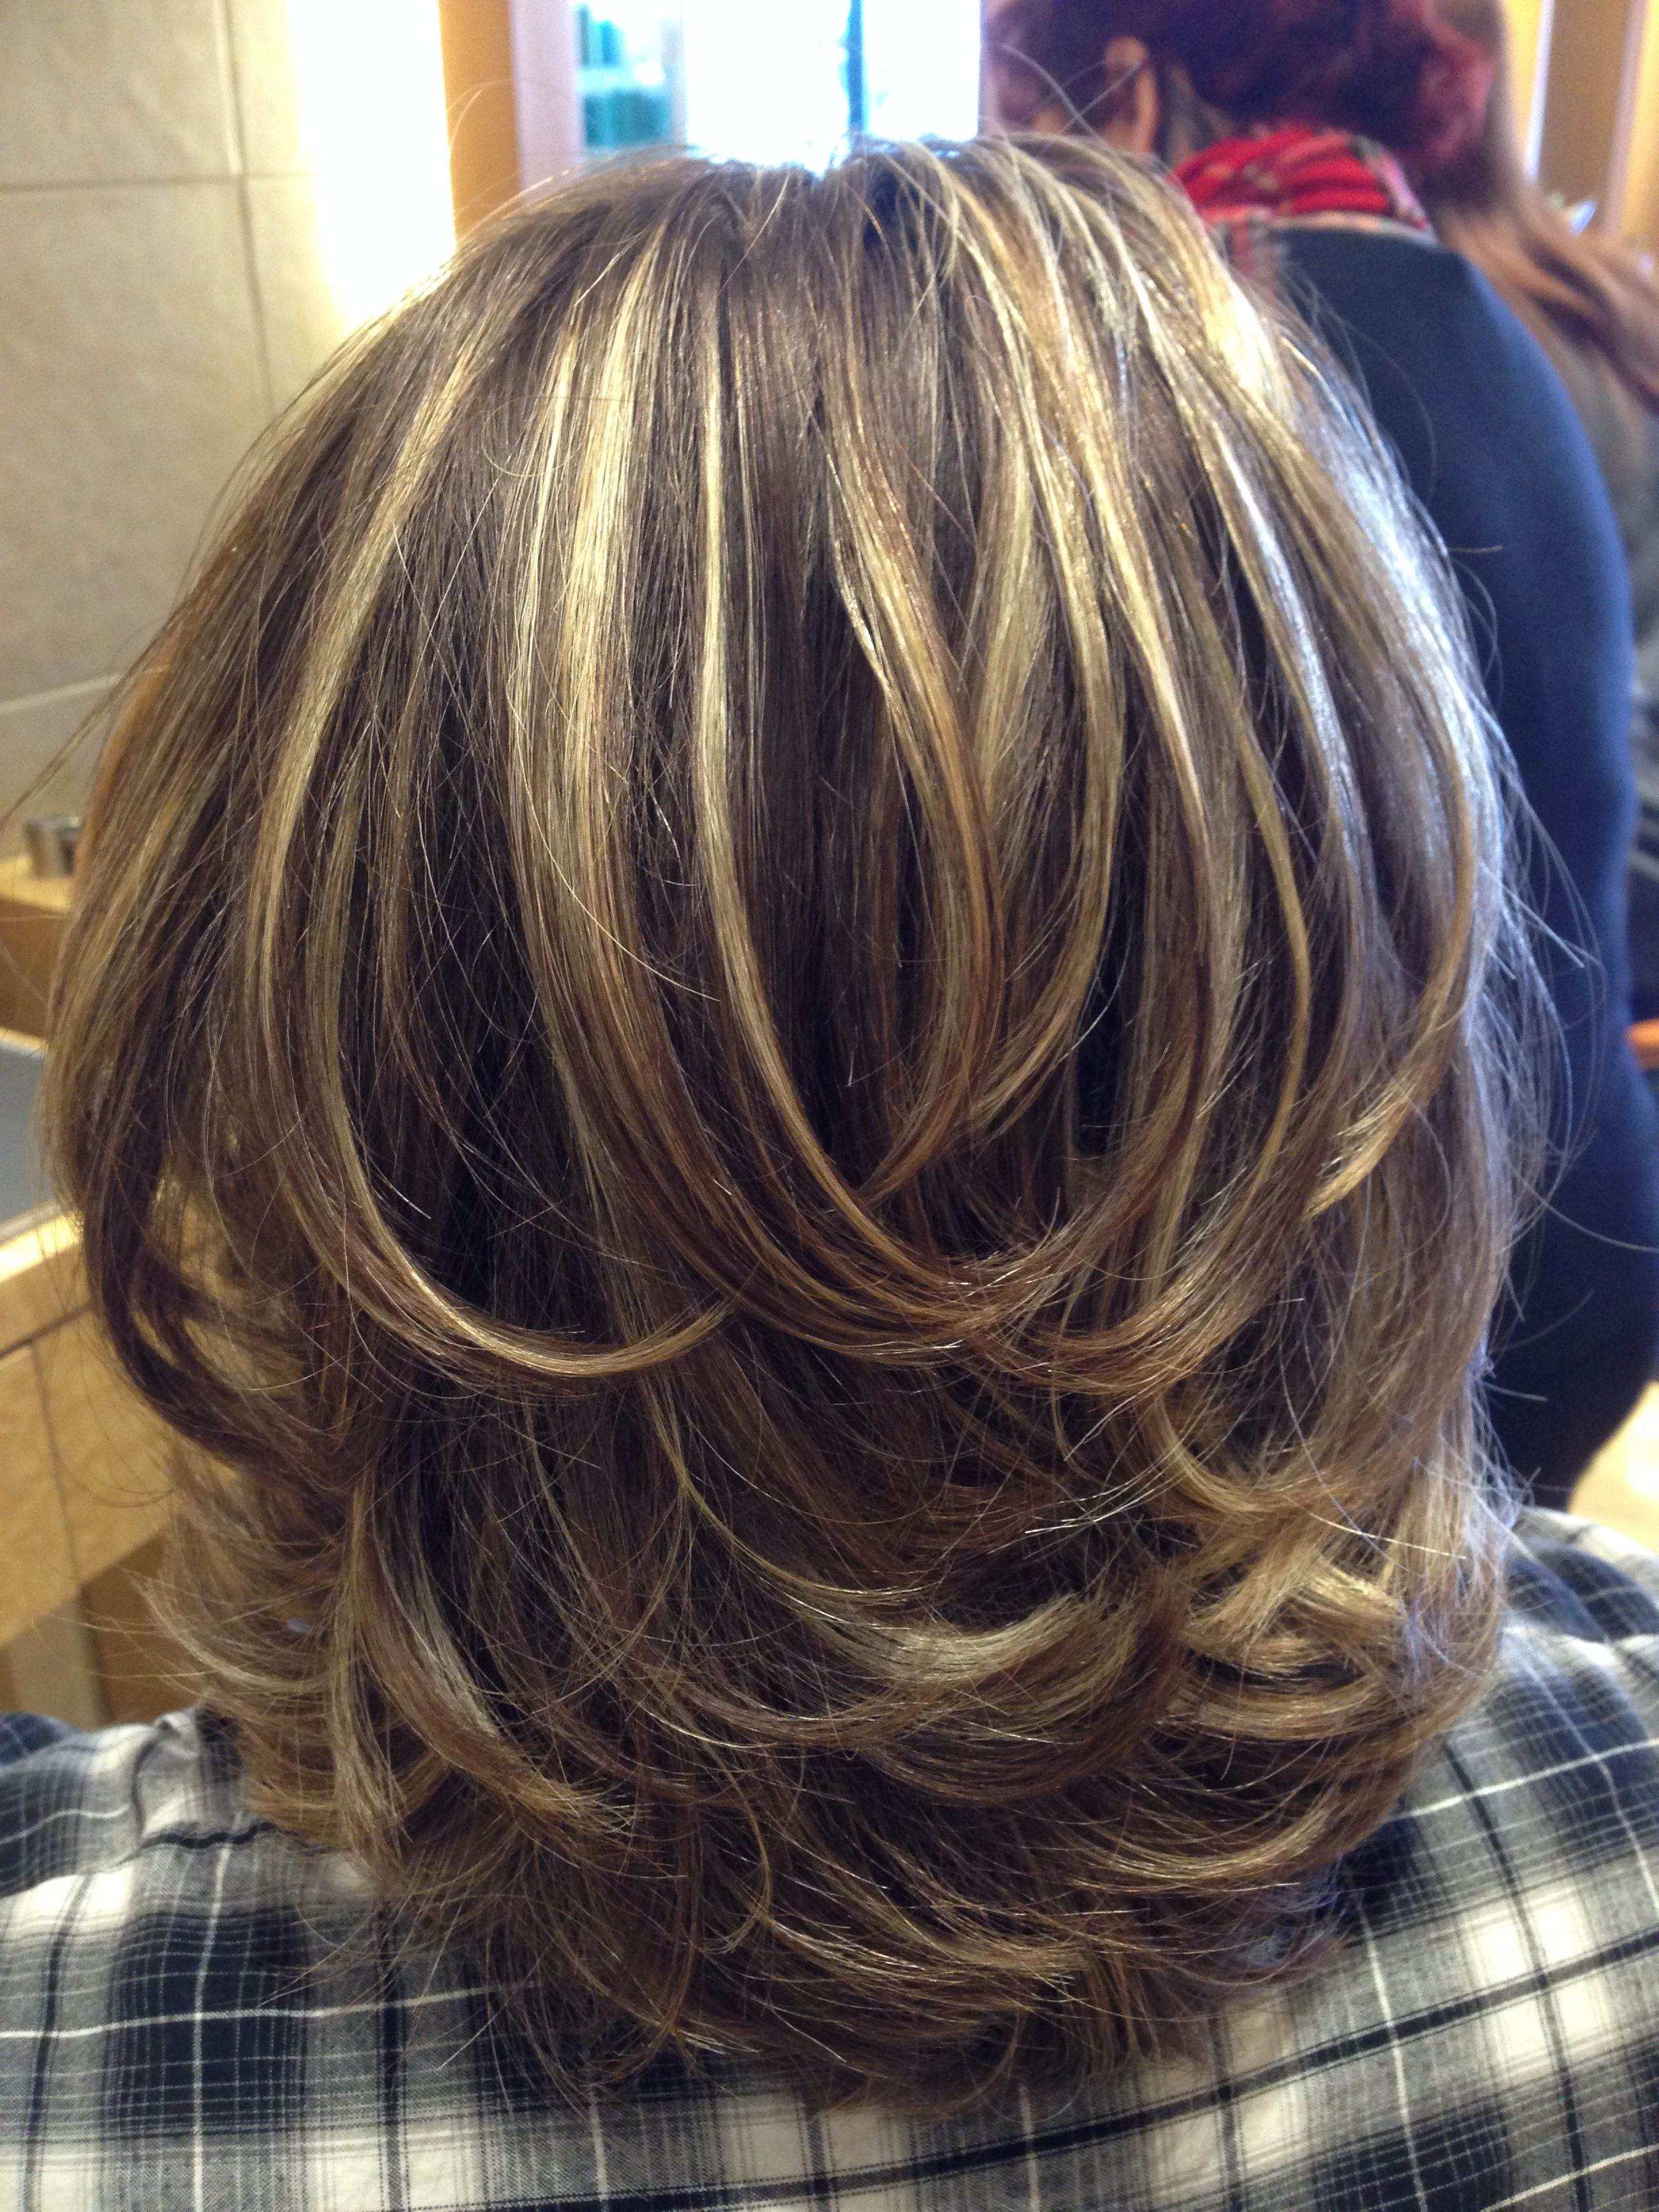 Layered Hair Cut (View 15 of 20)